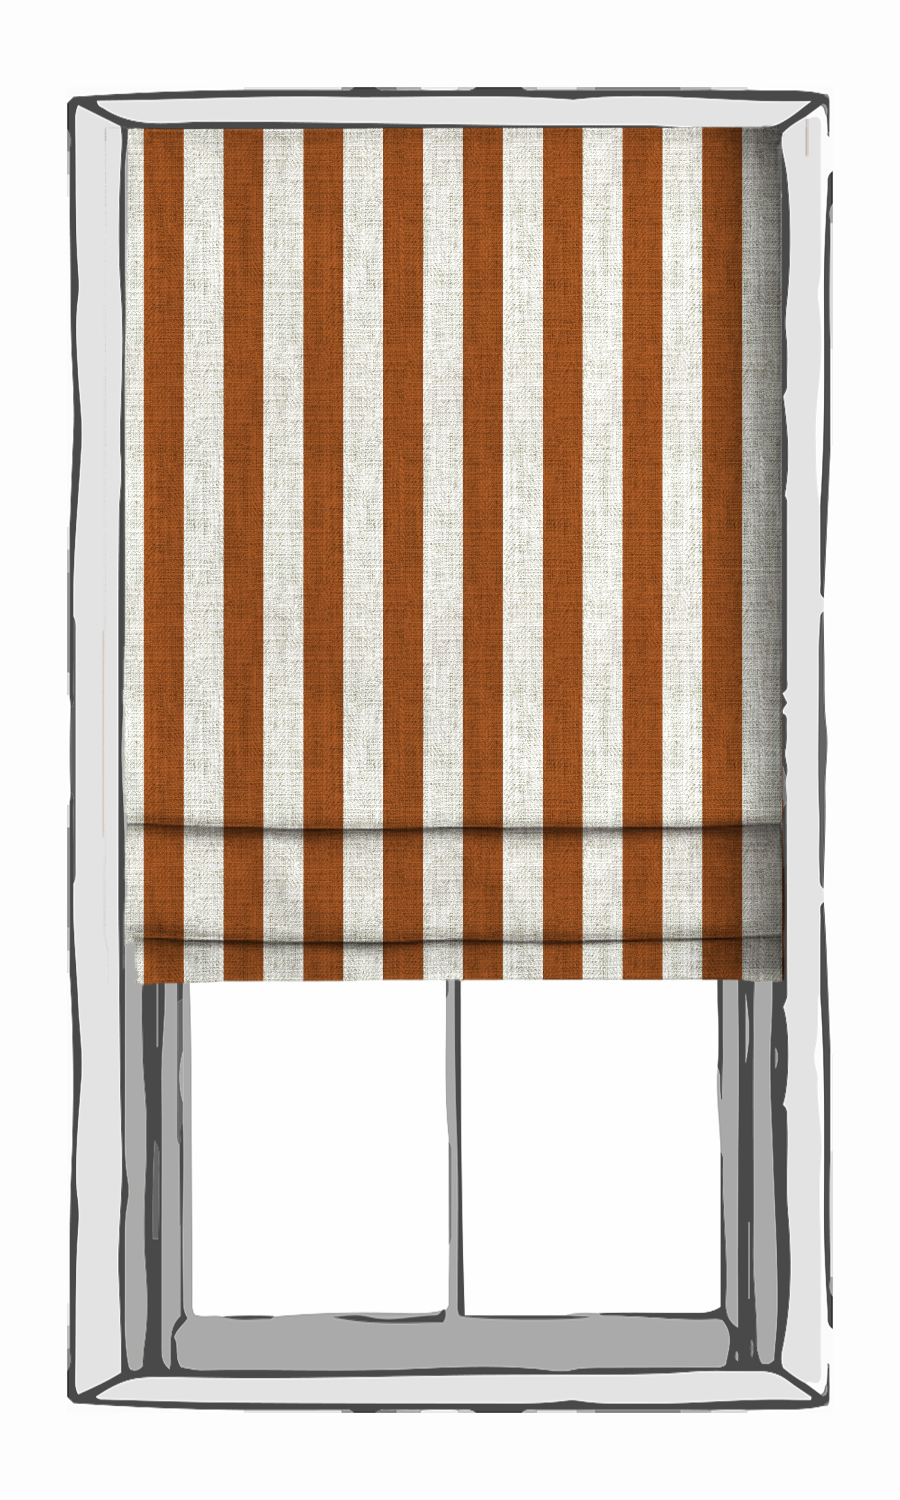 Orange and White Striped Custom Roman Shade